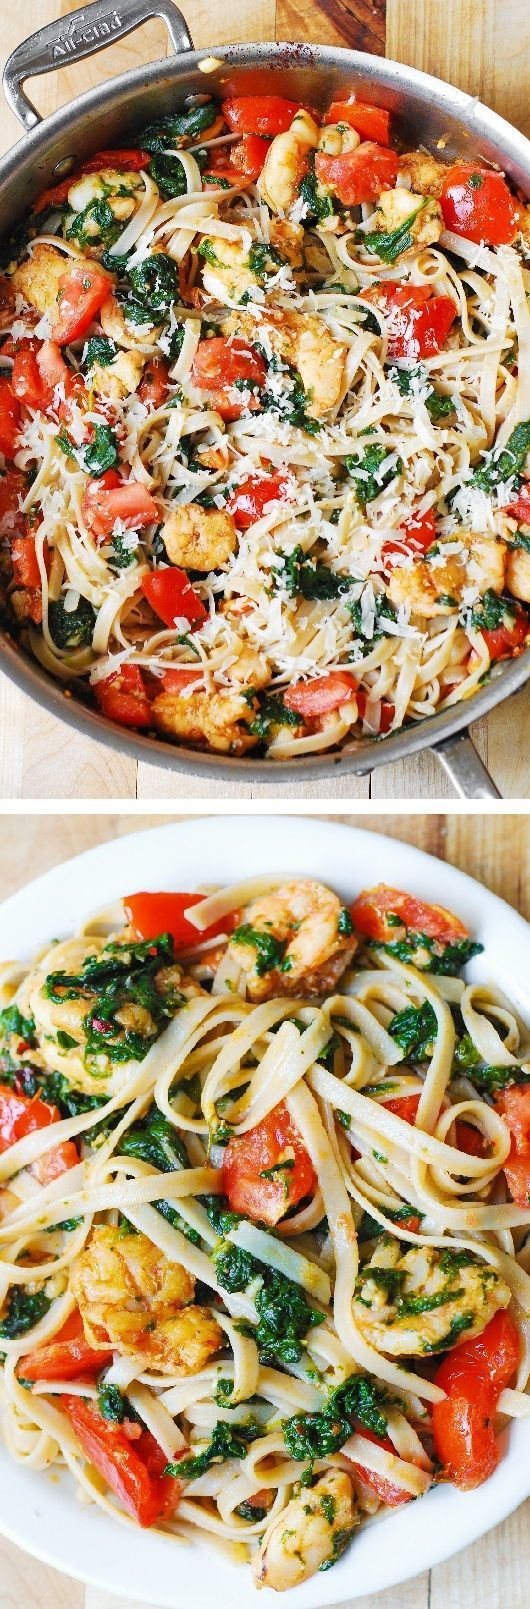 Shrimp pasta with fresh tomatoes and spinach in a garlic butter sauce. An Italian comfort food spiced just right! Includes gluten free option (I tried this recipe with Tinkyada brown rice fettuccine - it was AMAZING!) @juliasalbum